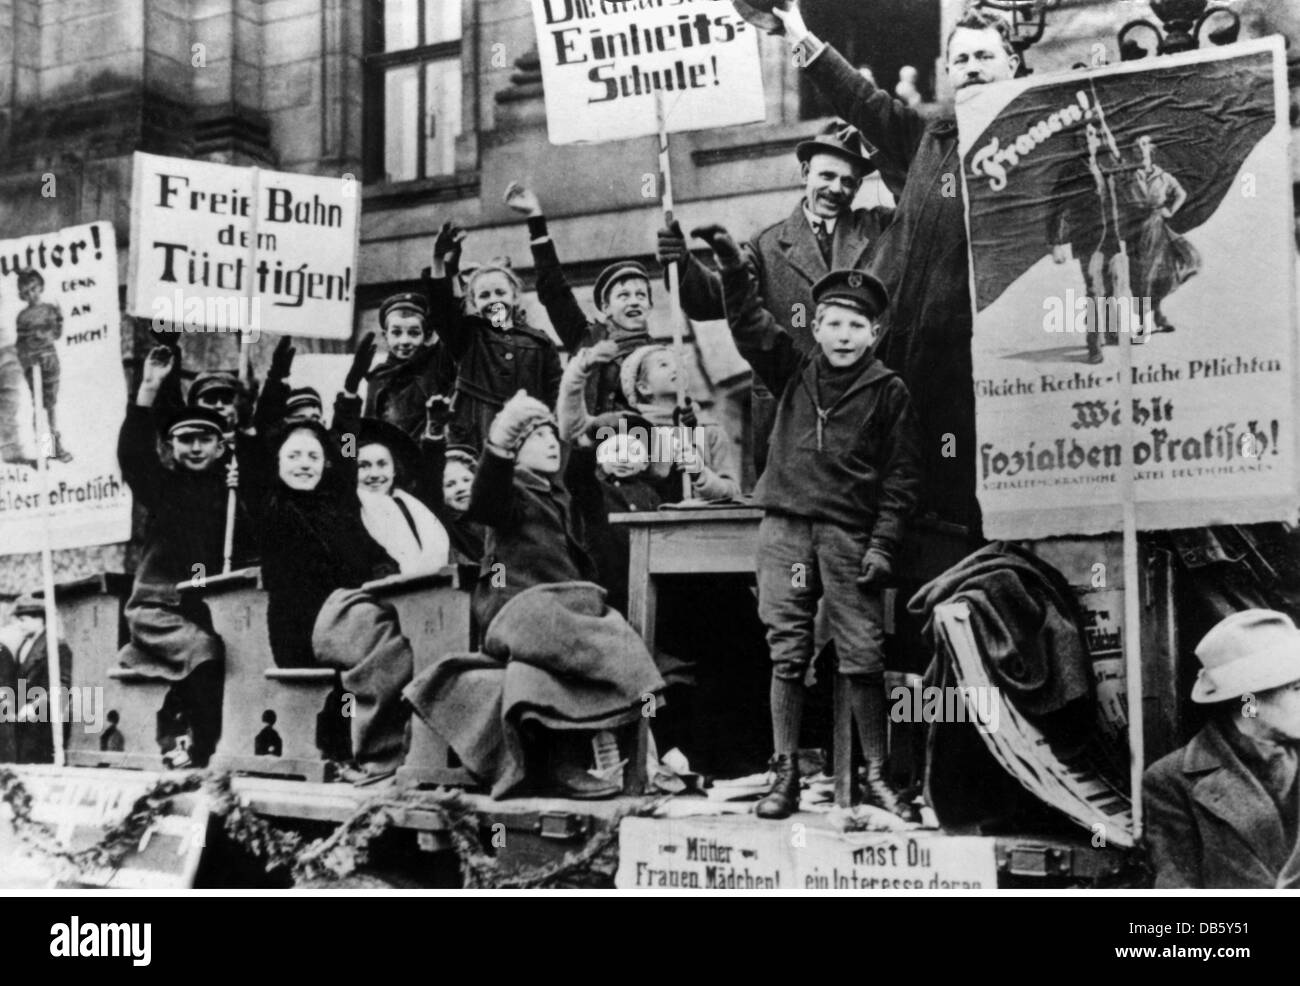 events, German Revolution 1918 - 1919, election for National Assembly, 19.1.1919, propaganda squad of the Social - Stock Image